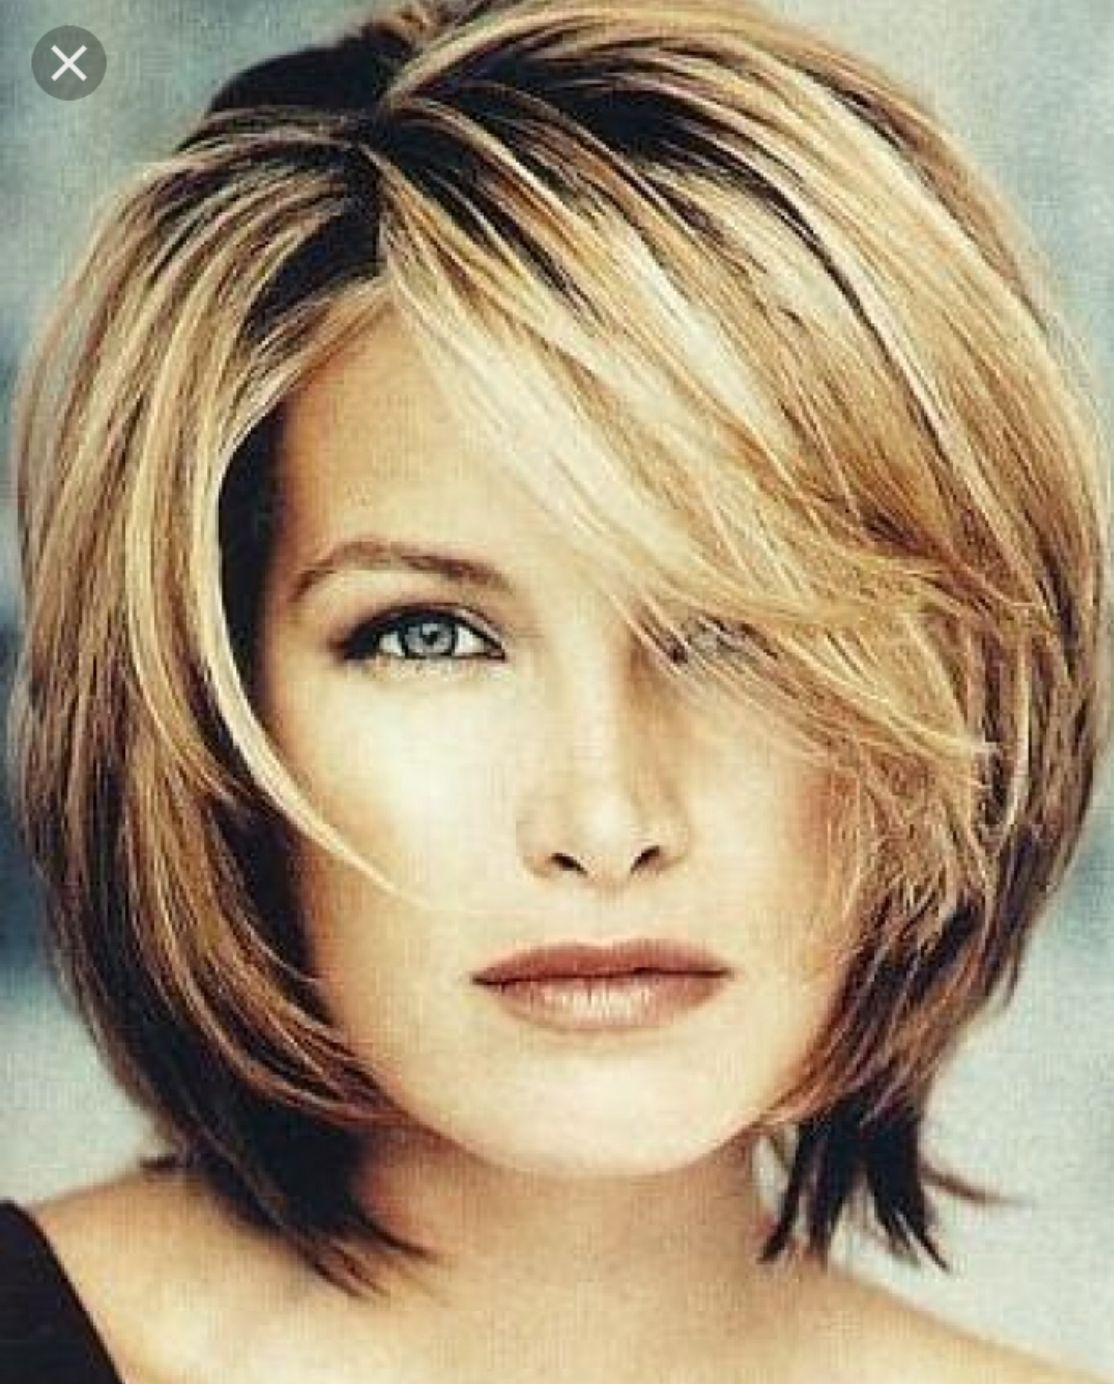 Medium Length Bob Hairstyles For Fine Hair Pinstephanie Wessler On Hair  Pinterest  Hair Style Hair Cuts